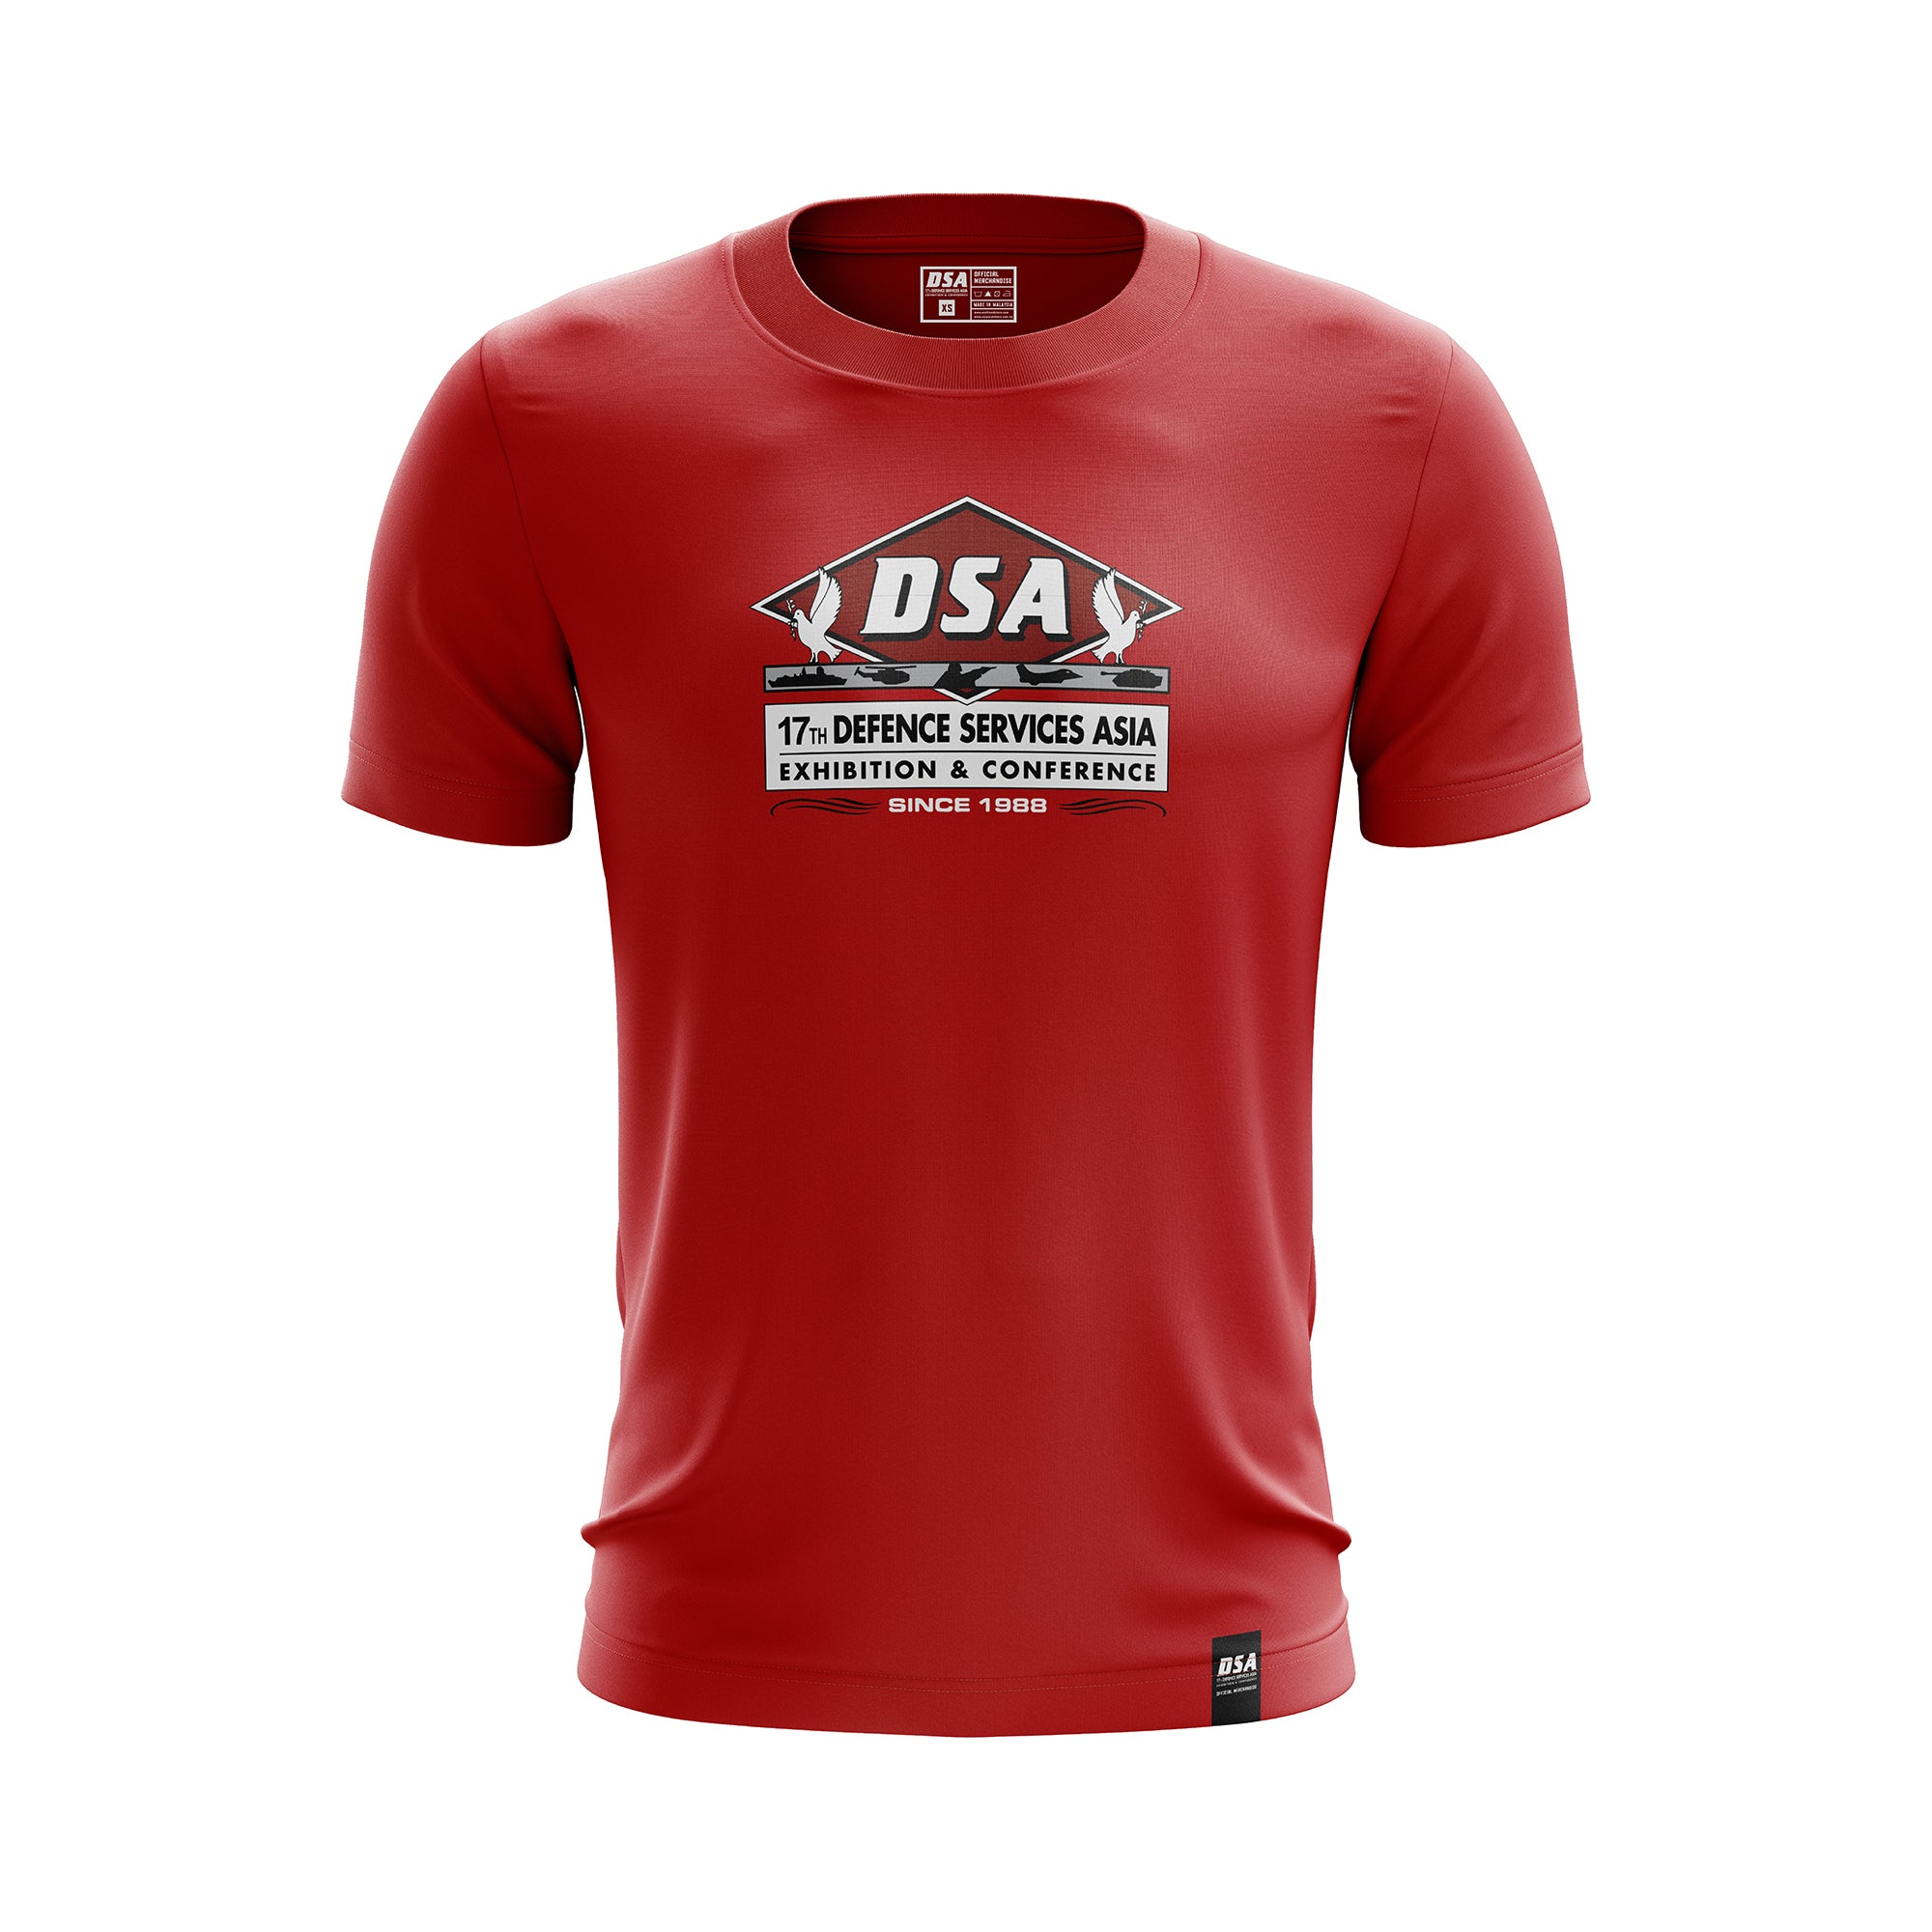 DSA Colour Printing Comfort Round Neck T-Shirt Red - DSA 2020 Official Merchandise